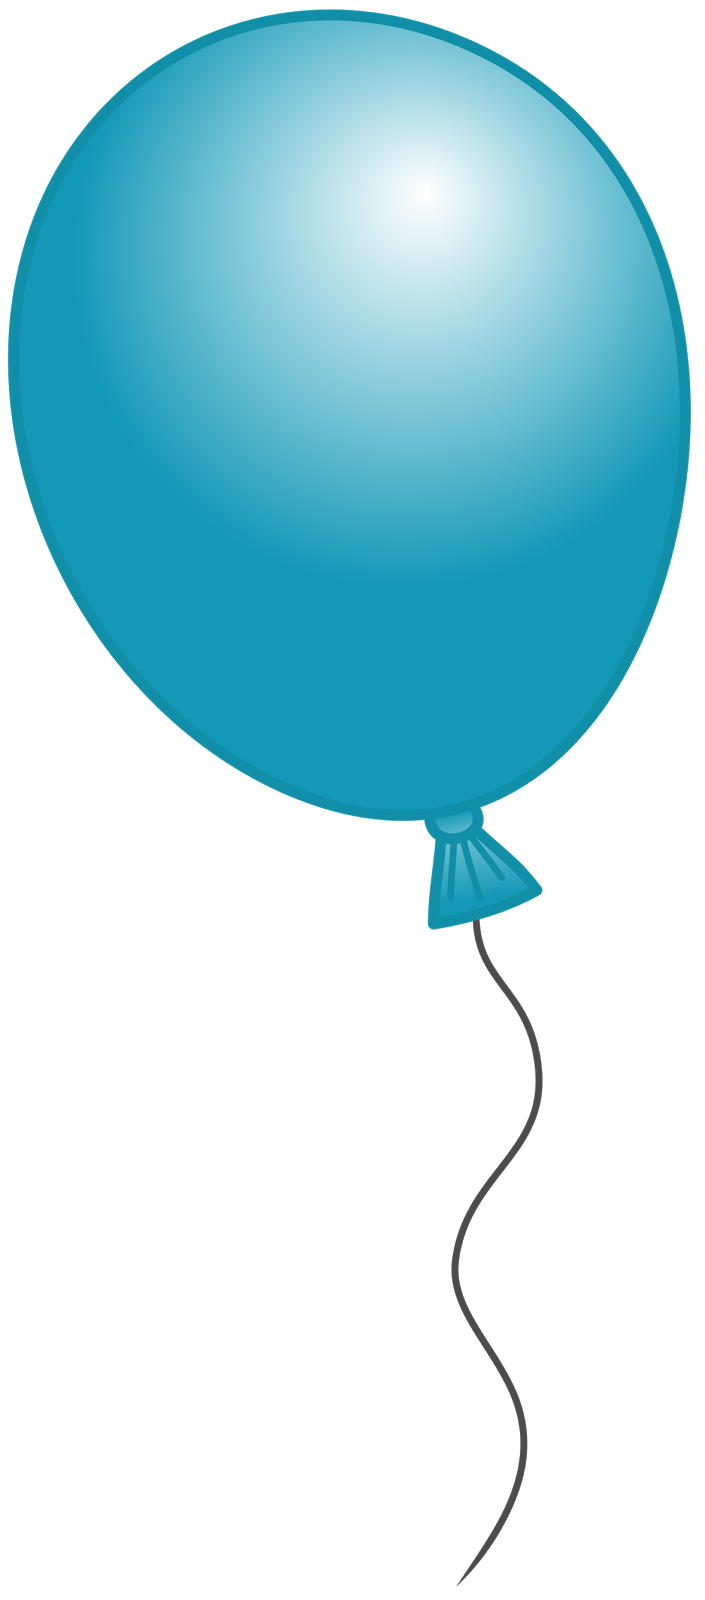 705x1600 Red Balloon Clip Art Clipart Image 4 5